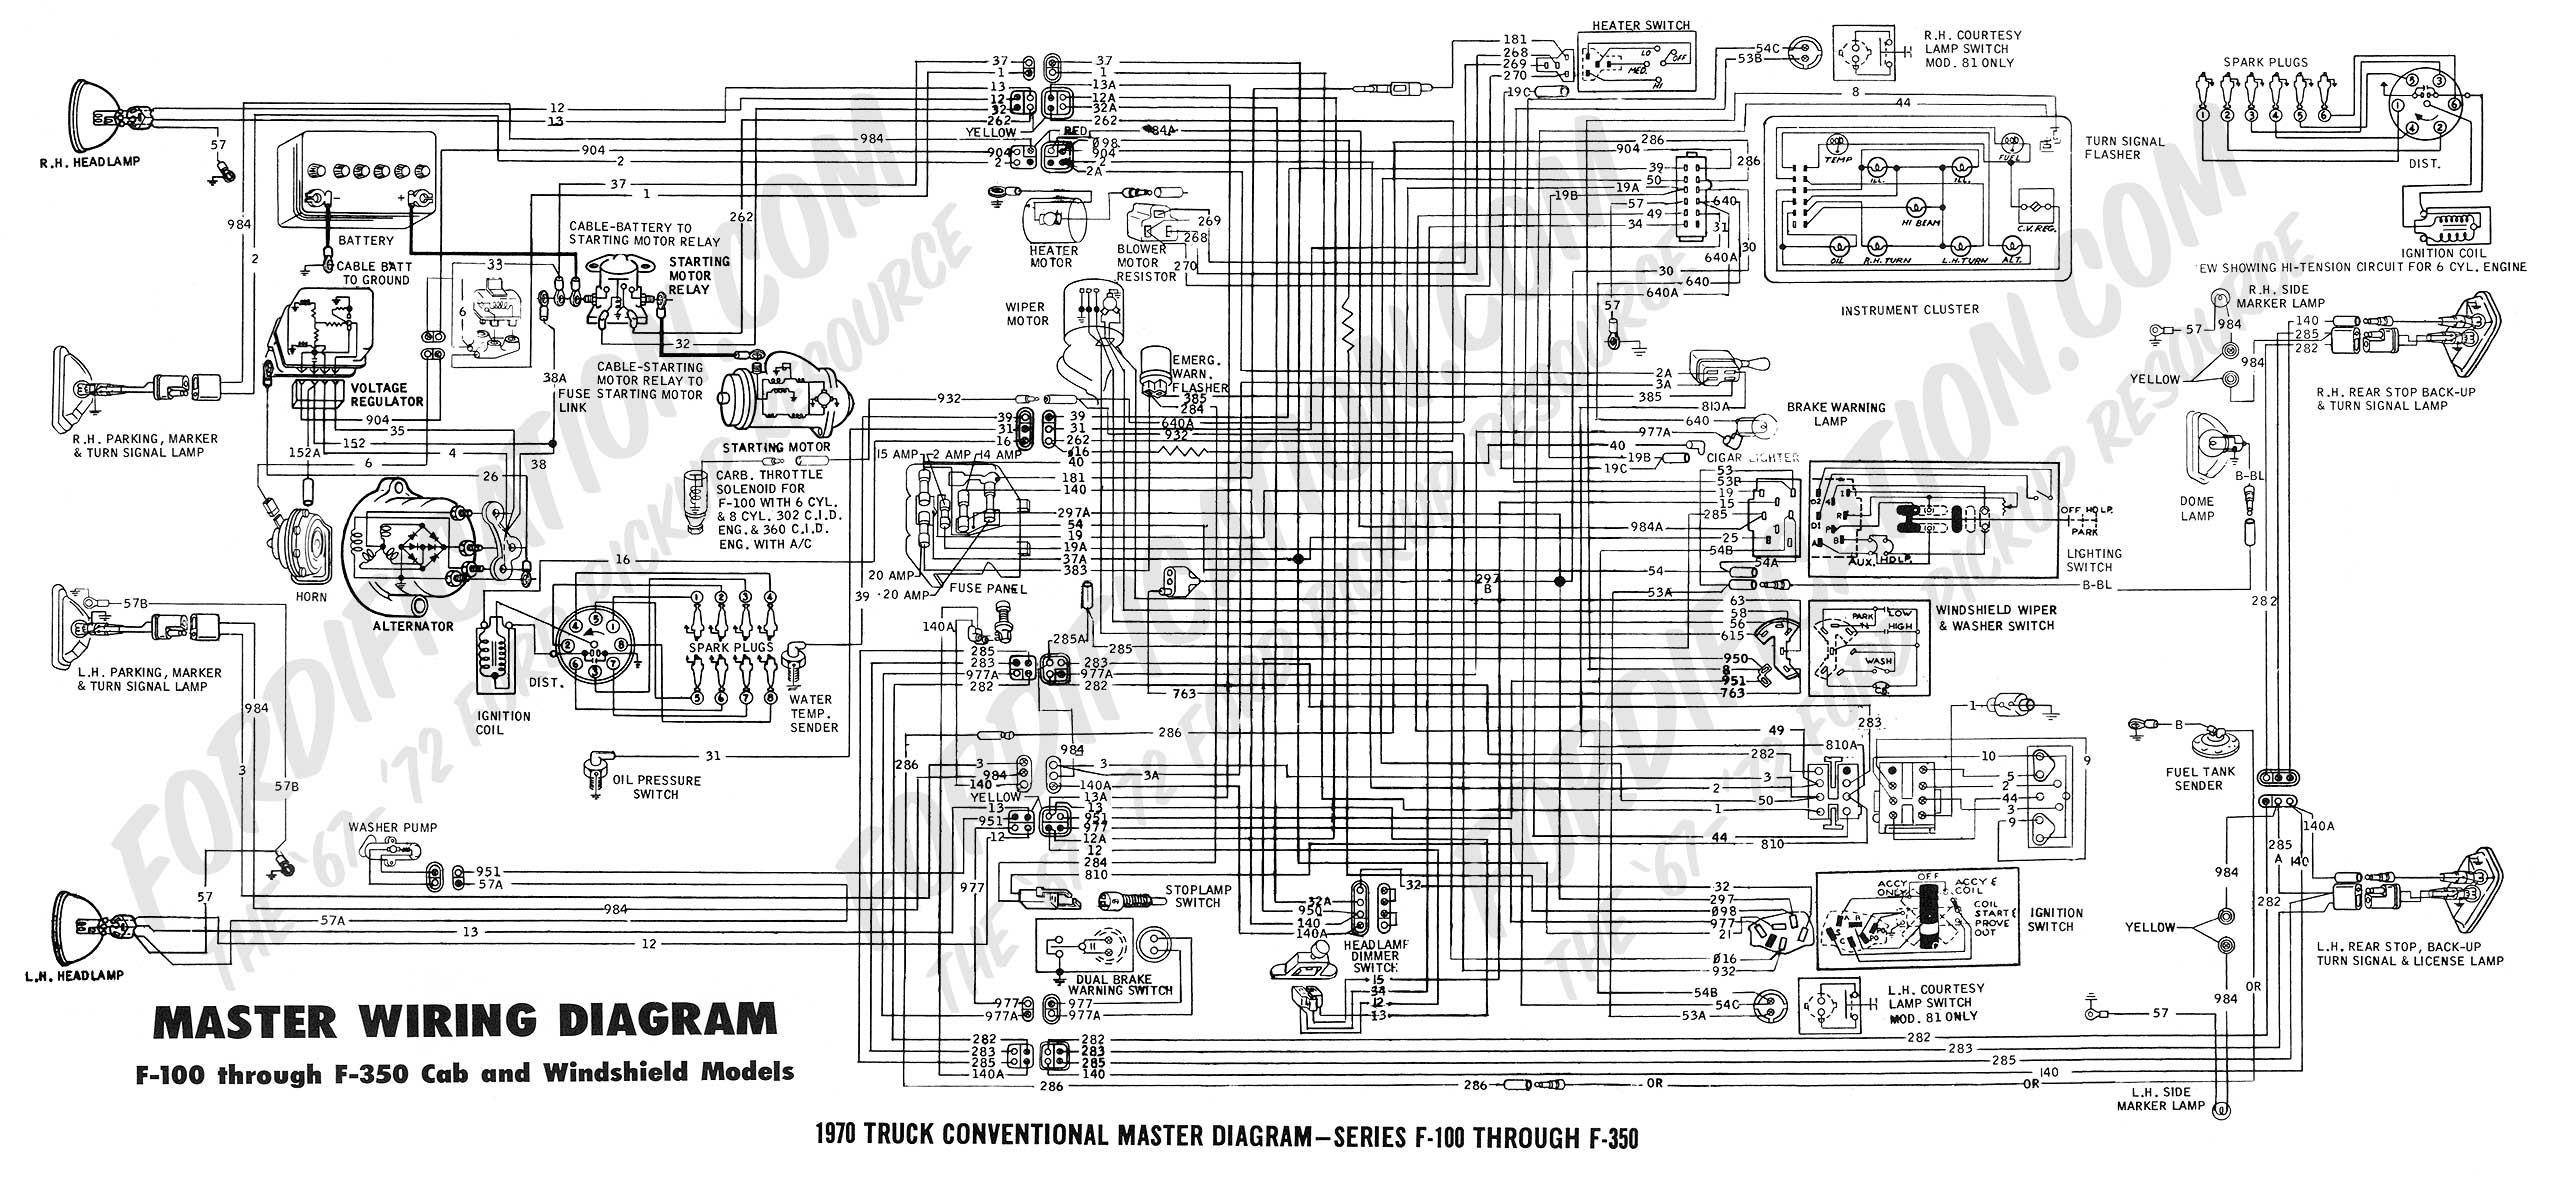 wiring diagram 70_master 1988 ford f 250 wiring diagram on 1988 download wirning diagrams 1988 ford ranger wiring diagram at fashall.co